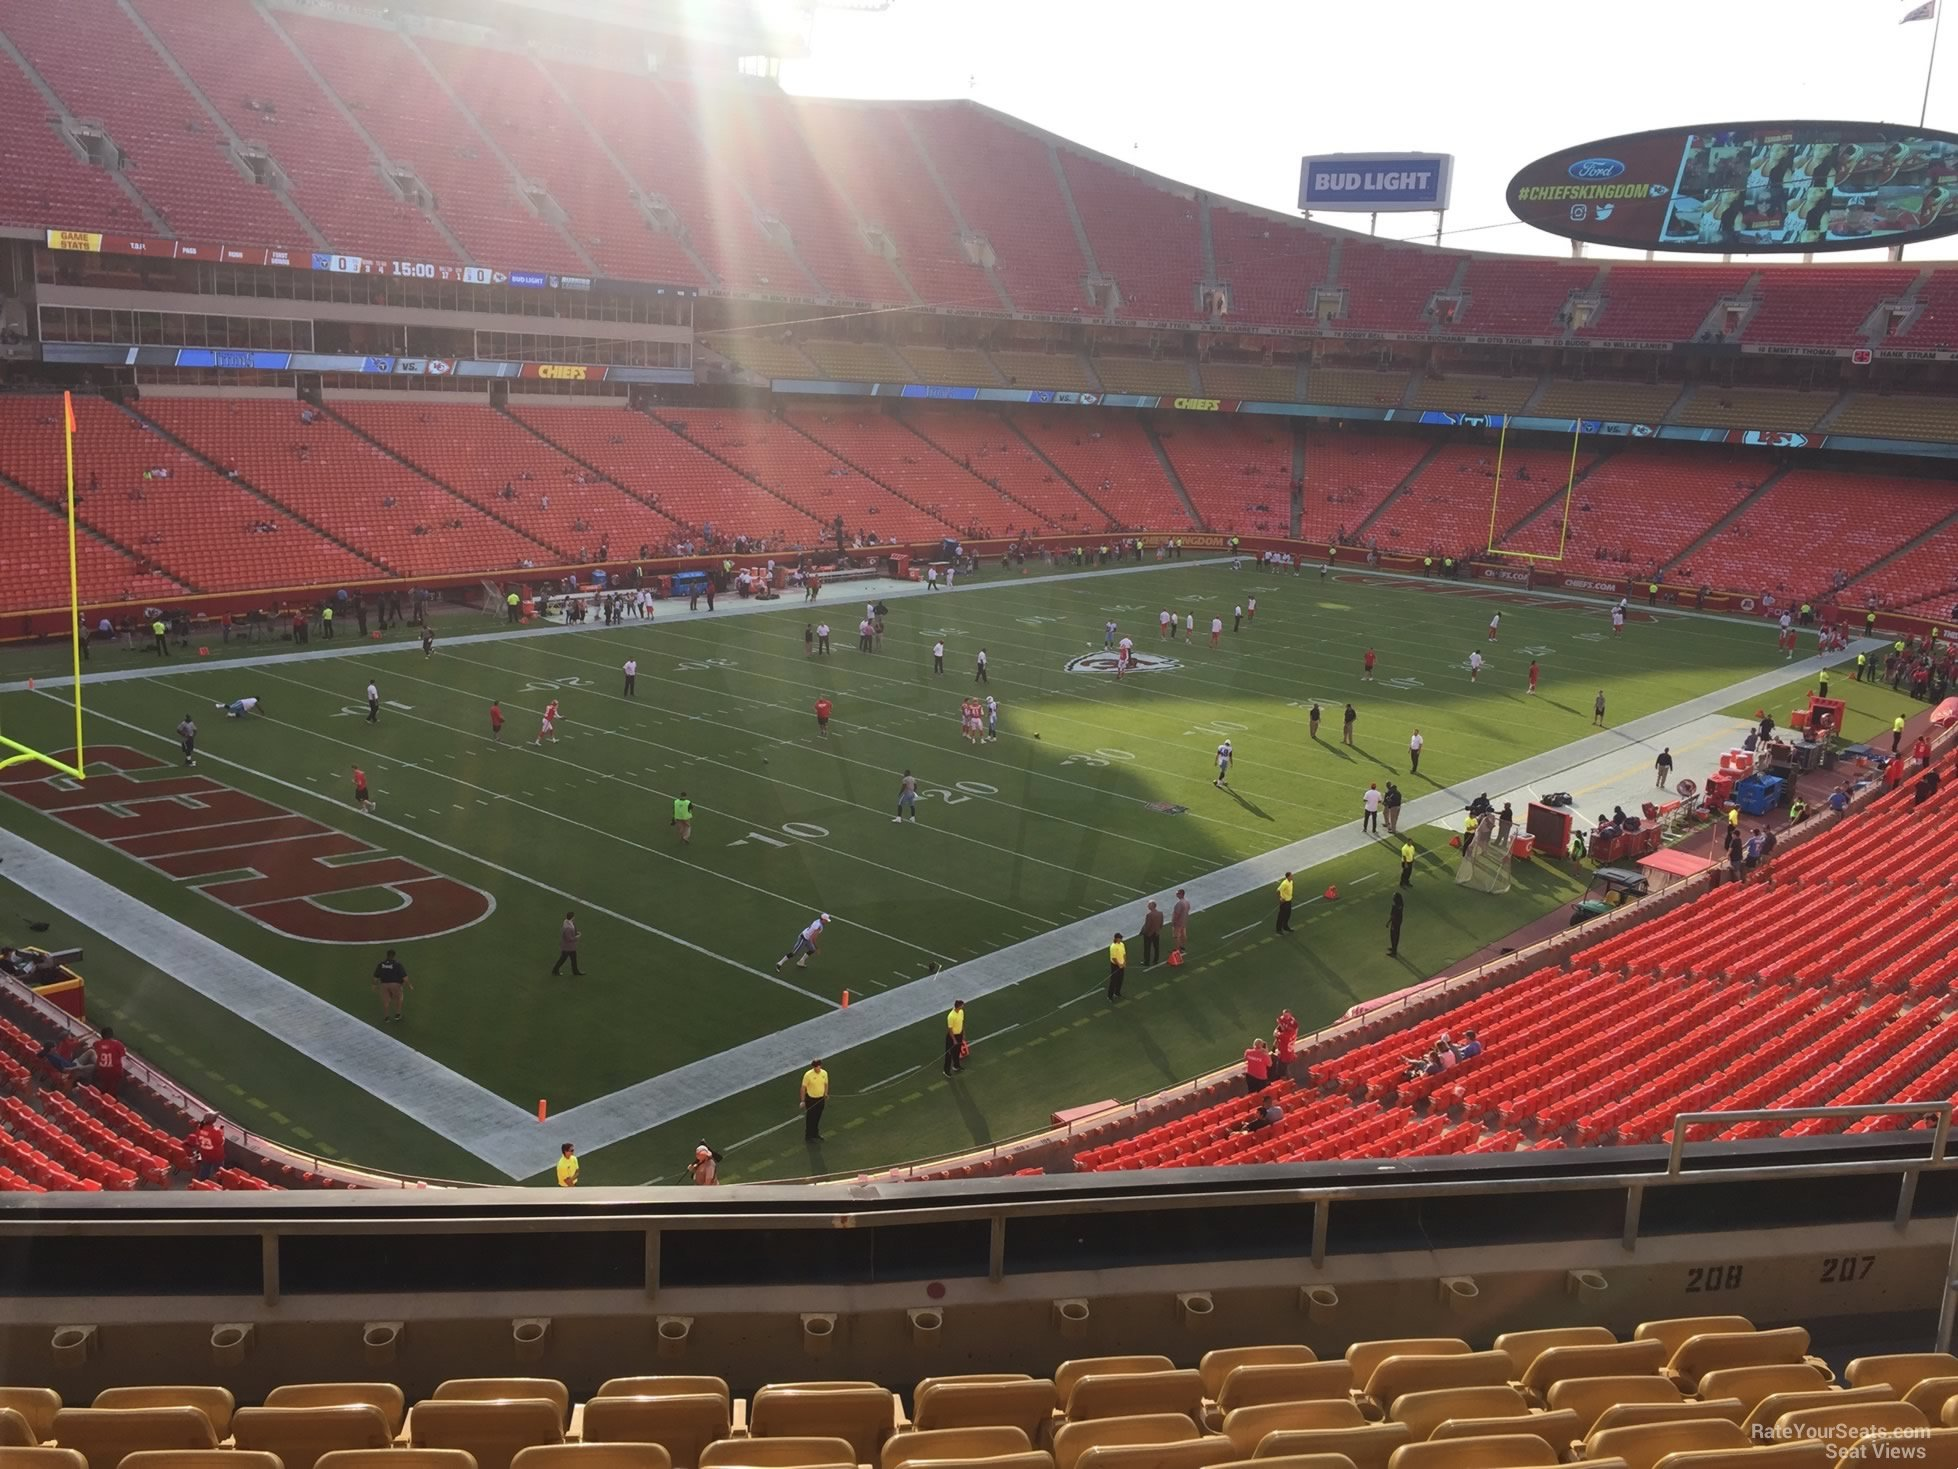 Seat View for Arrowhead Stadium Section 208, Row 7